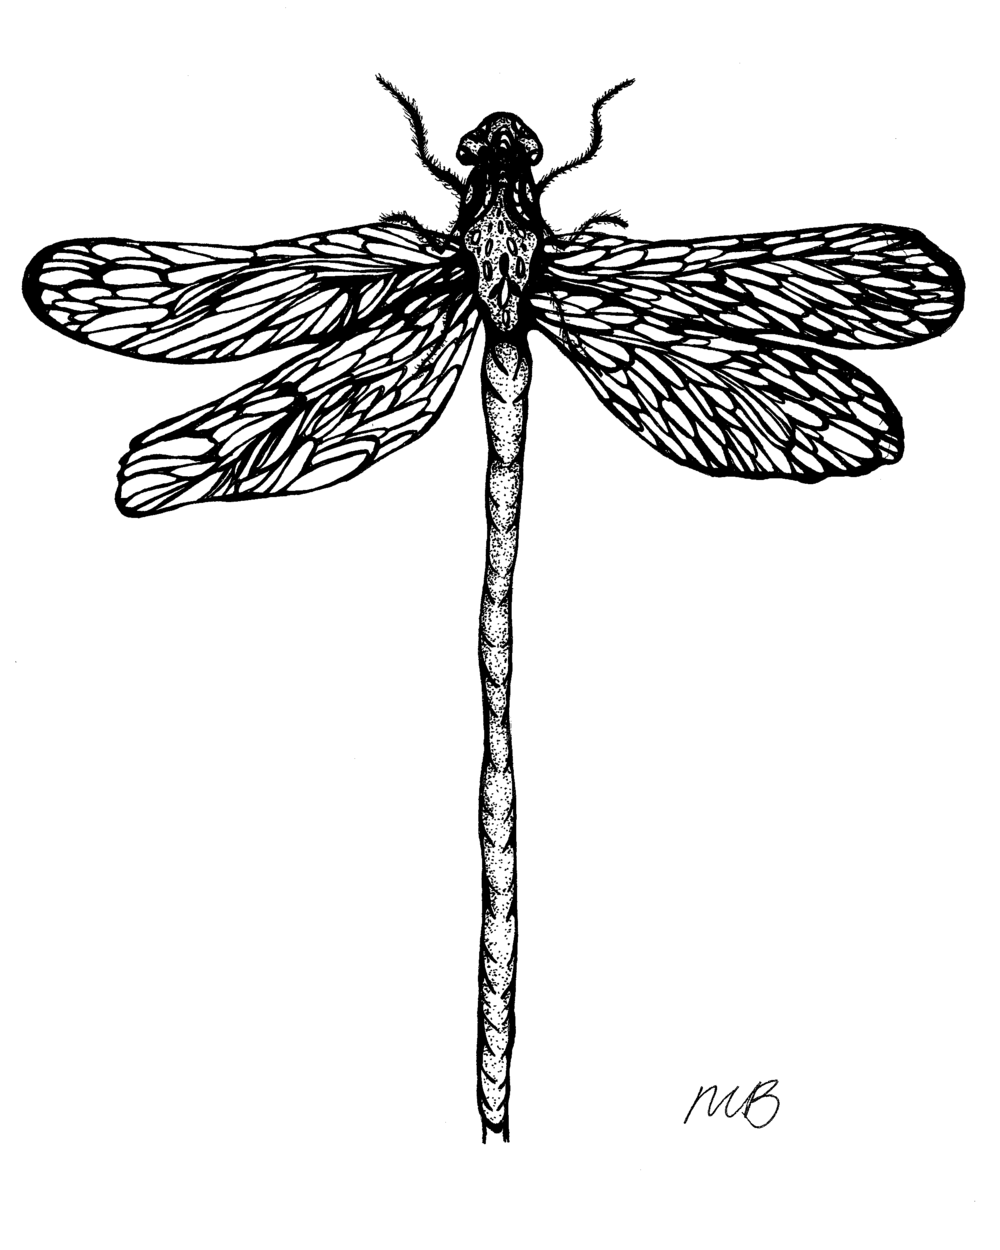 """""""Poised"""", from the Insects Series, #15, ink on paper, 8"""" x 10"""", 2016."""